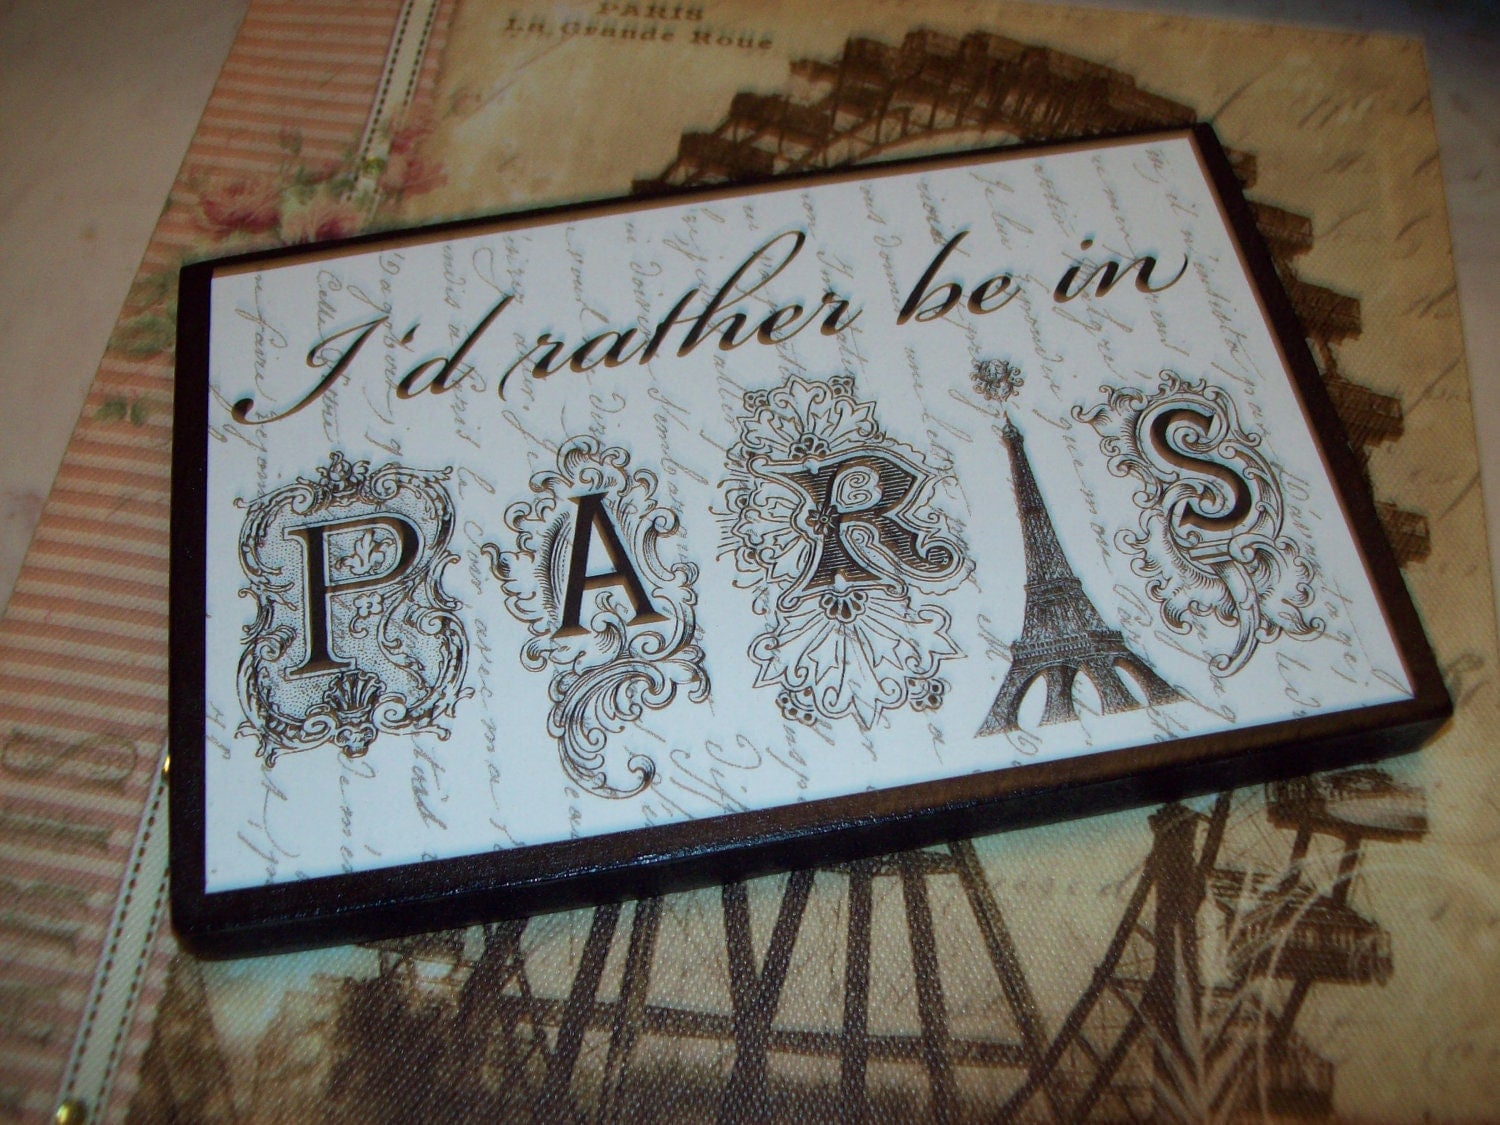 id rather be in paris shelf sitter signpars decorparis theme - Shop Bedroom Decor